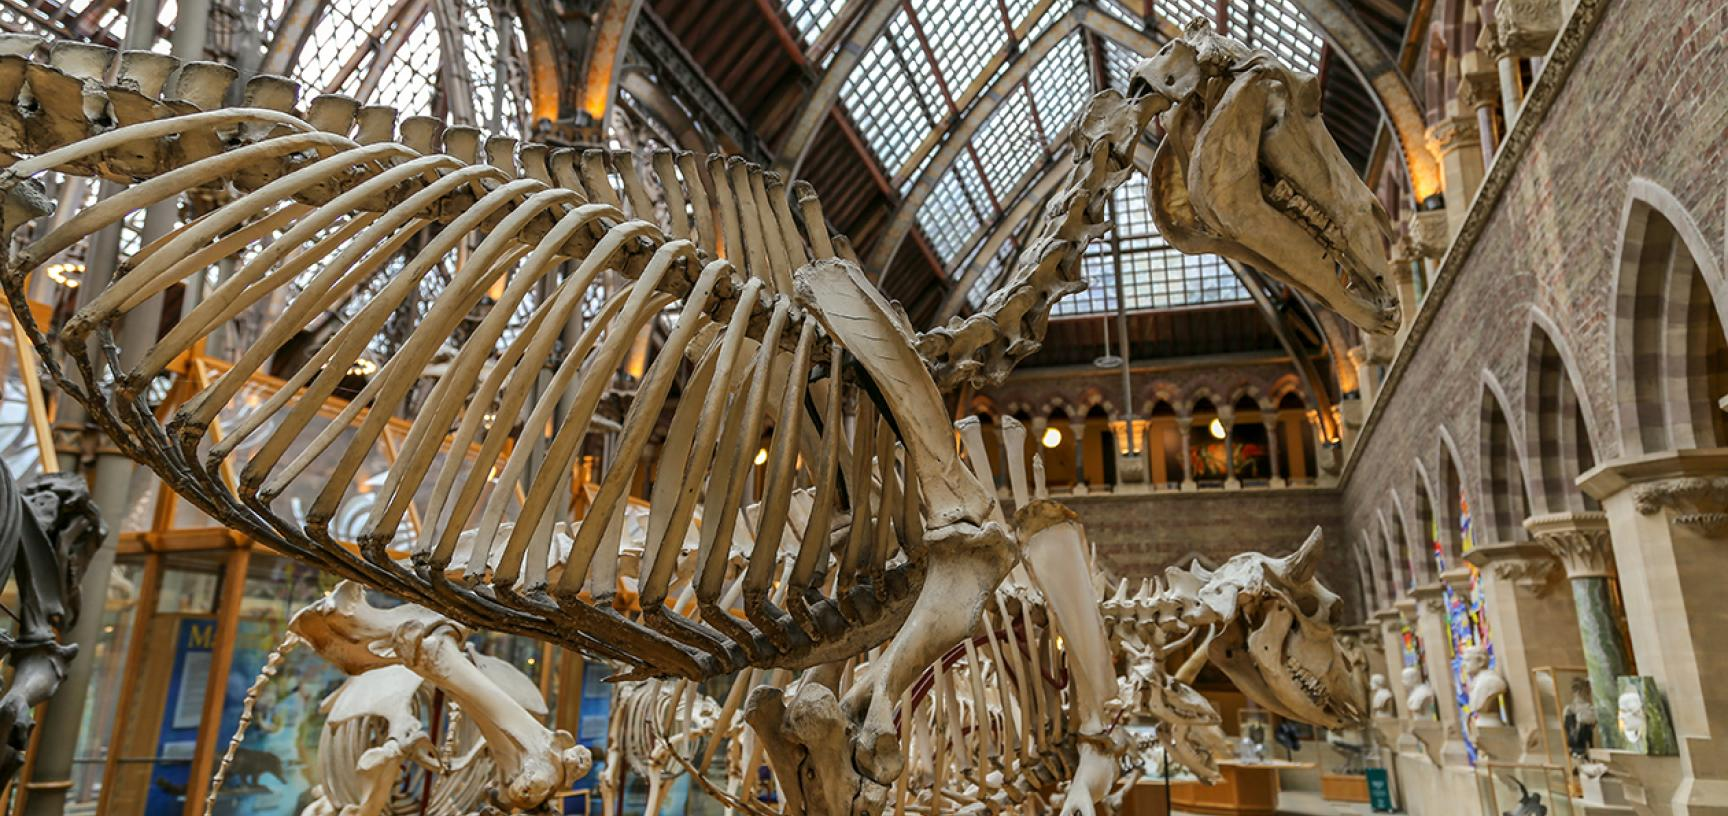 Horse skeleton (Equus caballus) with bison in background.